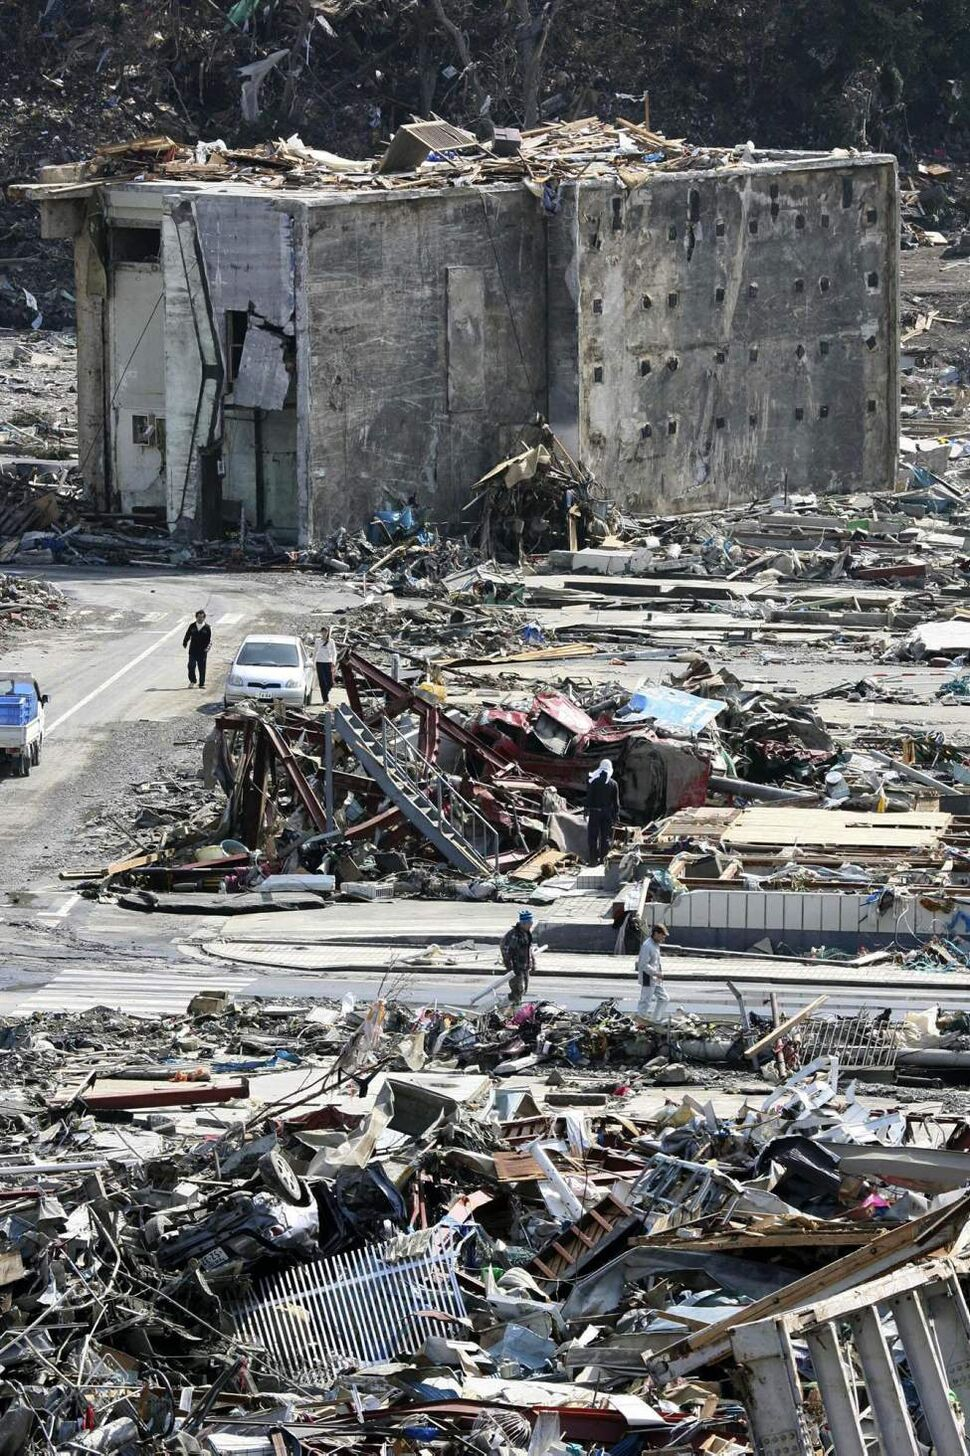 People walk through the rubble of destroyed buildings in Onagawa town, Miyagi Prefecture, northern Japan, Monday, March 14, 2011, three days after a powerful earthquake-triggered tsunami hit the country's east coast. (AP Photo/The Yomiuri Shimbun, Makoto Kondo)